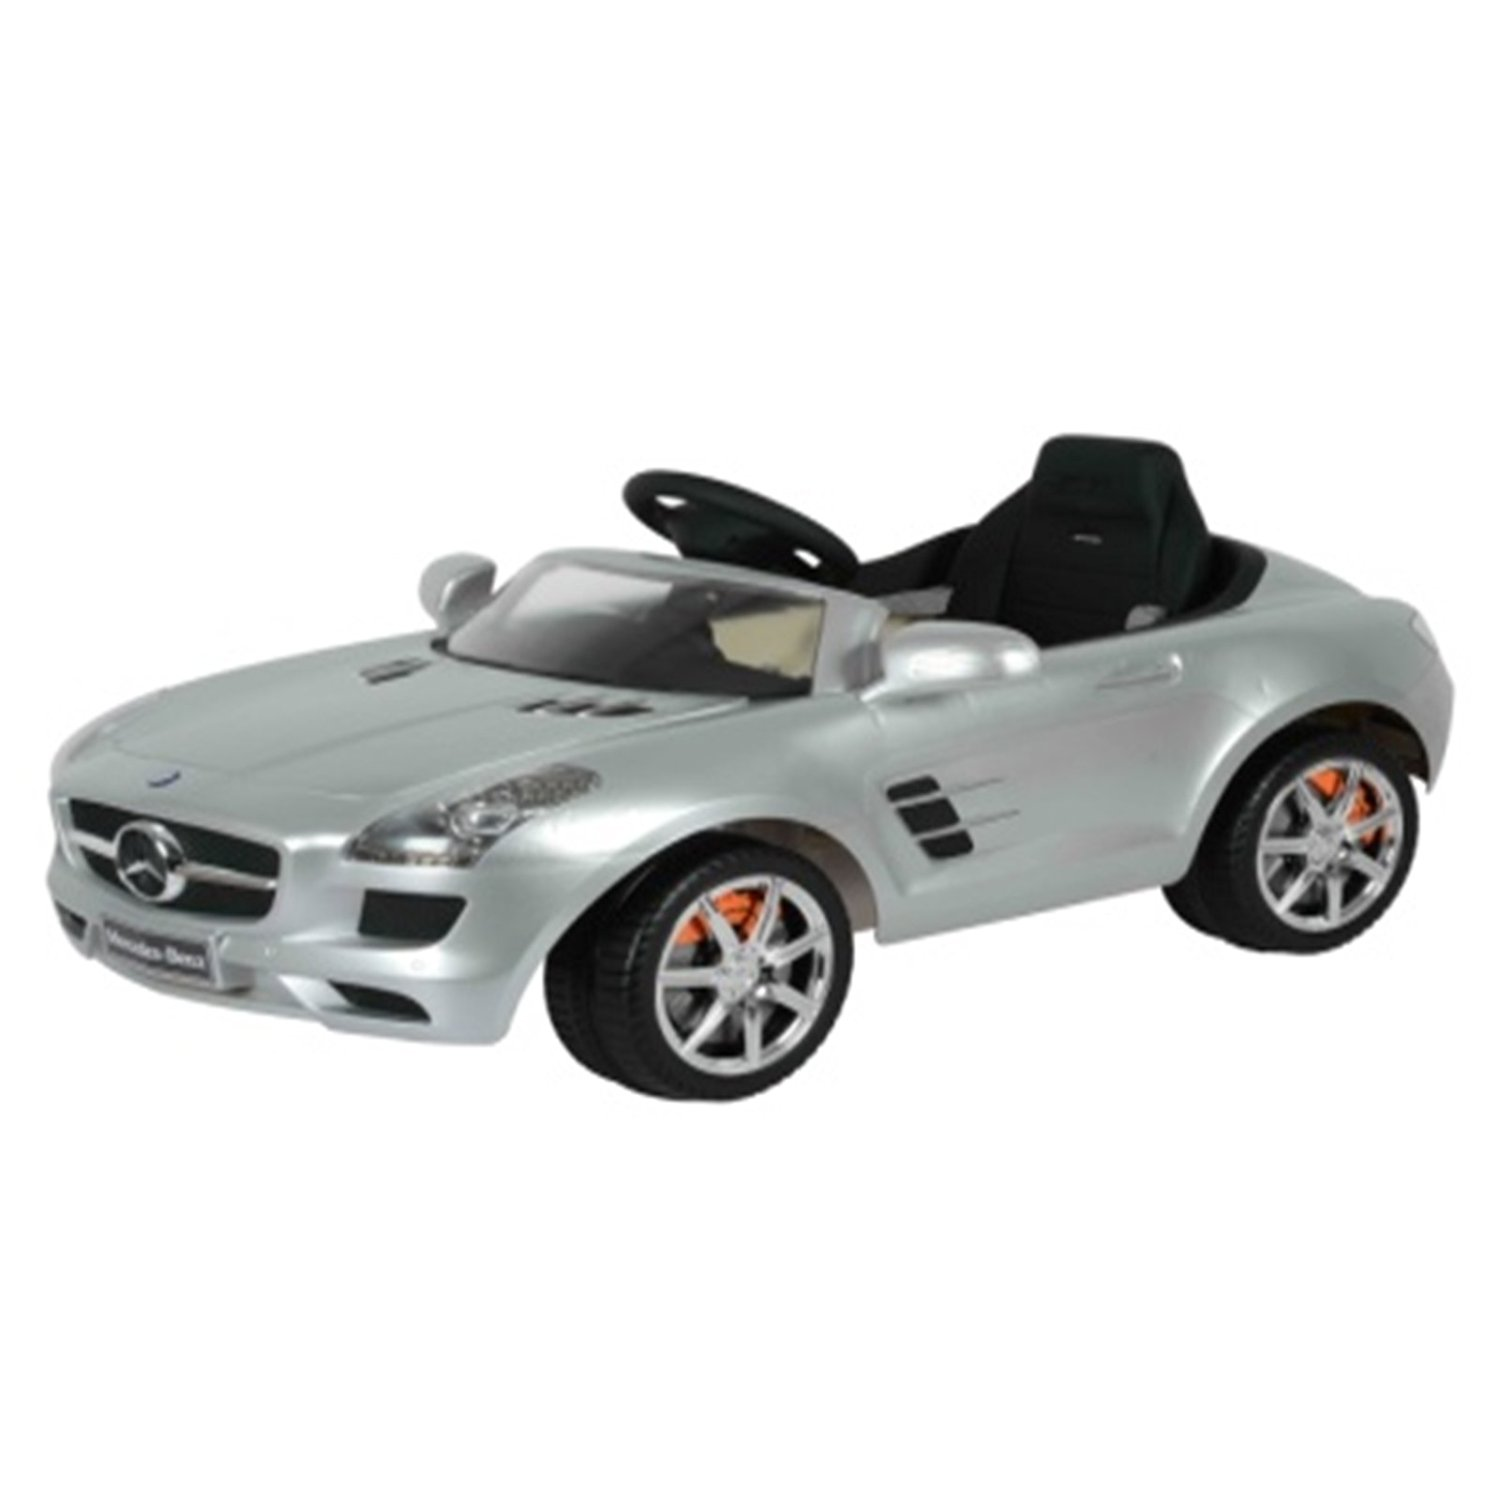 Mercedes Benz SLS AMG Officially Licsensed 6V Battery Powered Ride On - Silver